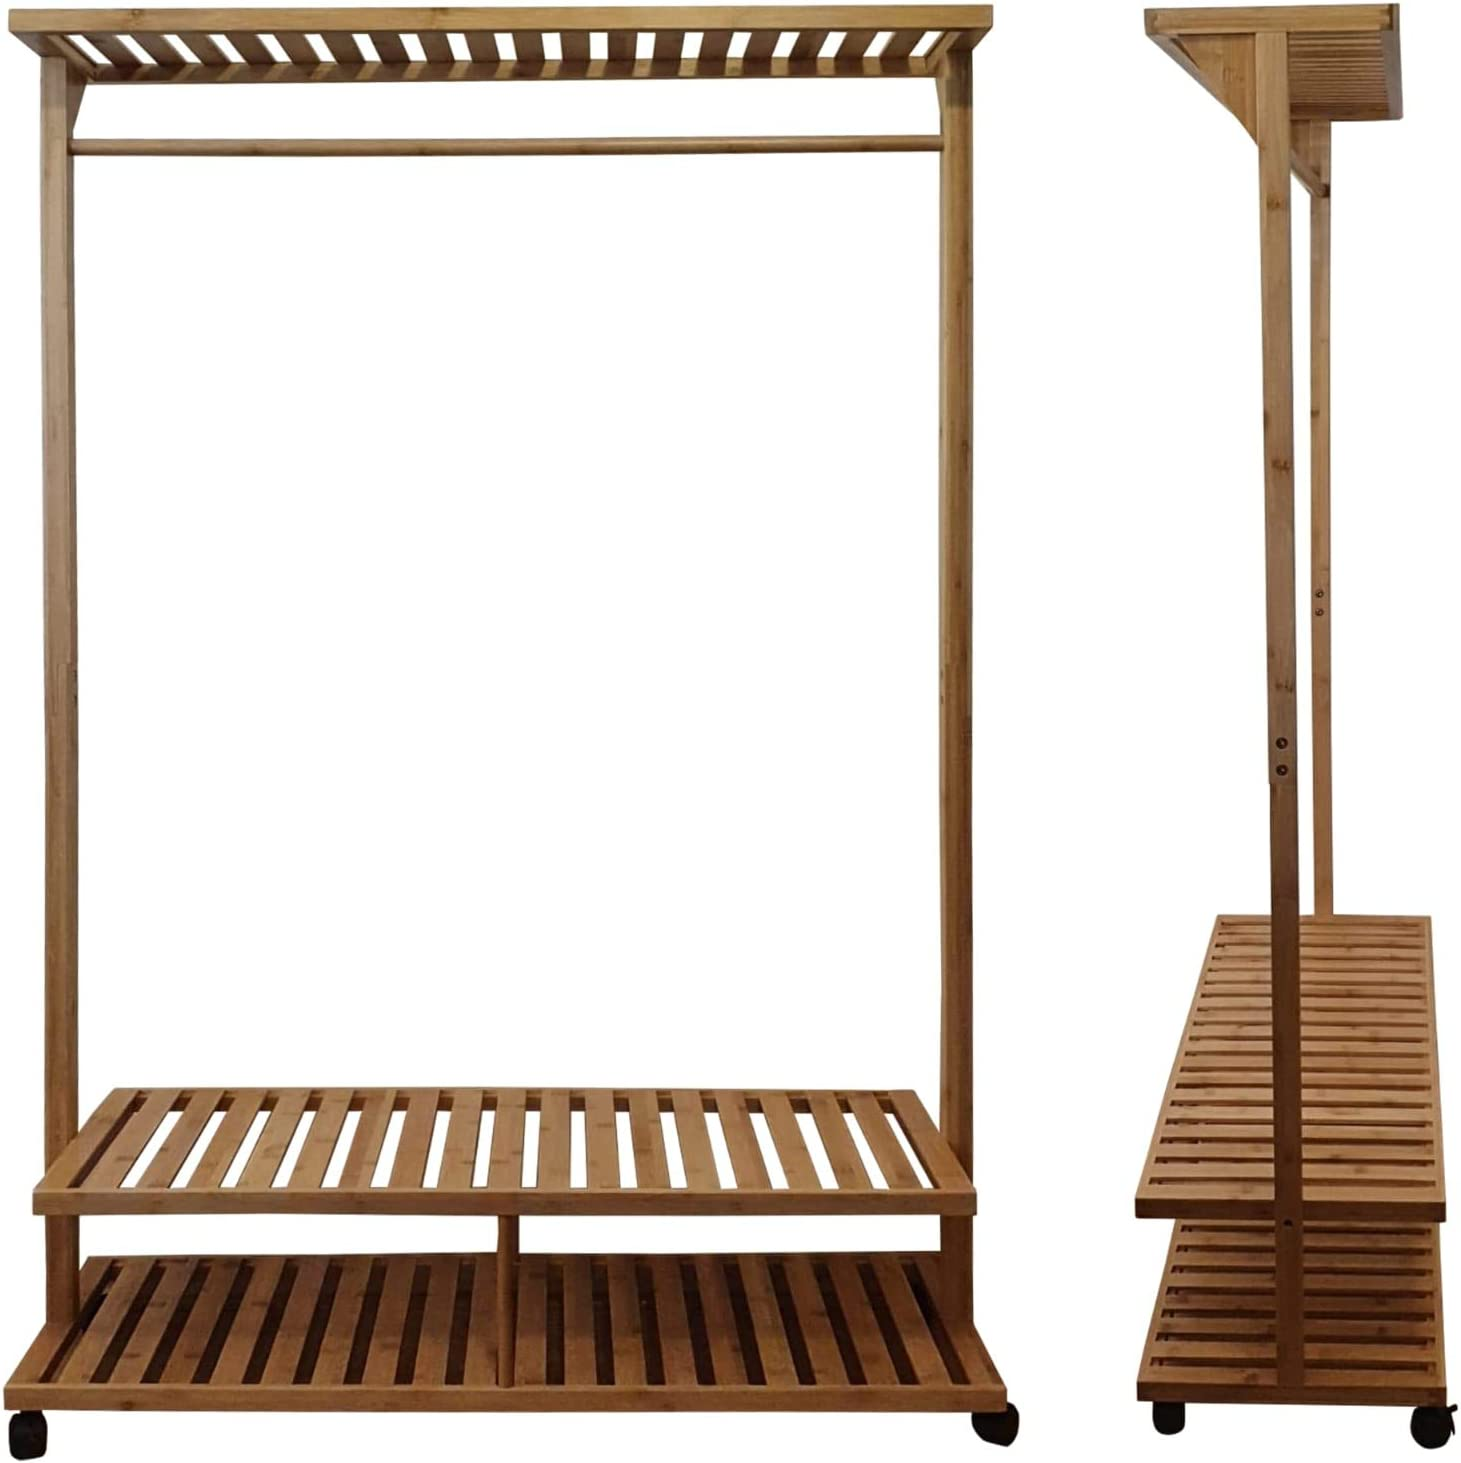 D'ORA BAMBOO Clothes Rack With Wood Shelves Ha - Raleigh Mall Clothing Chicago Mall